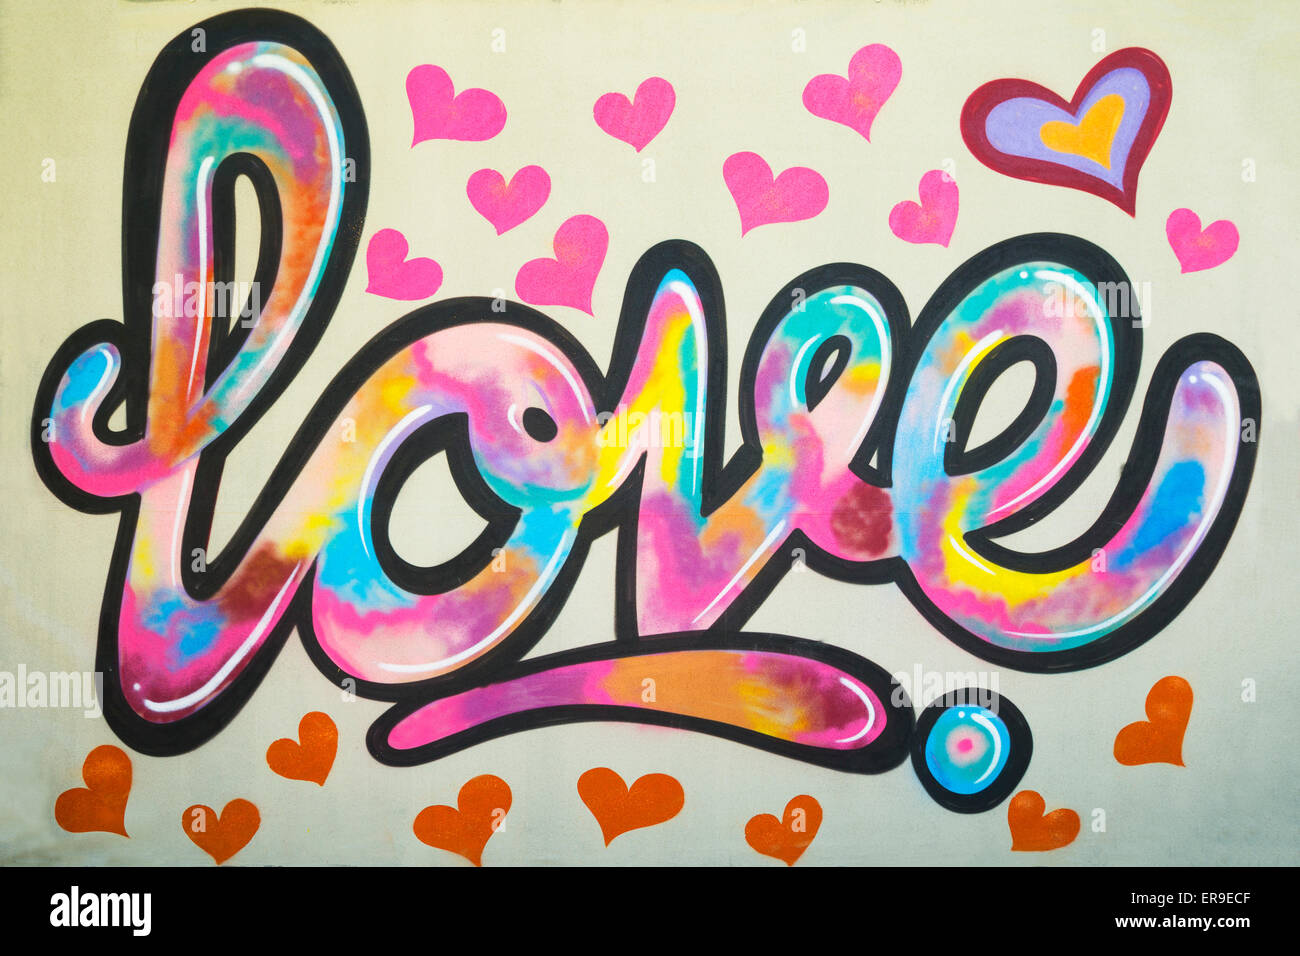 Graffiti text Love on the wall with many pink colored heart shapes around close up view